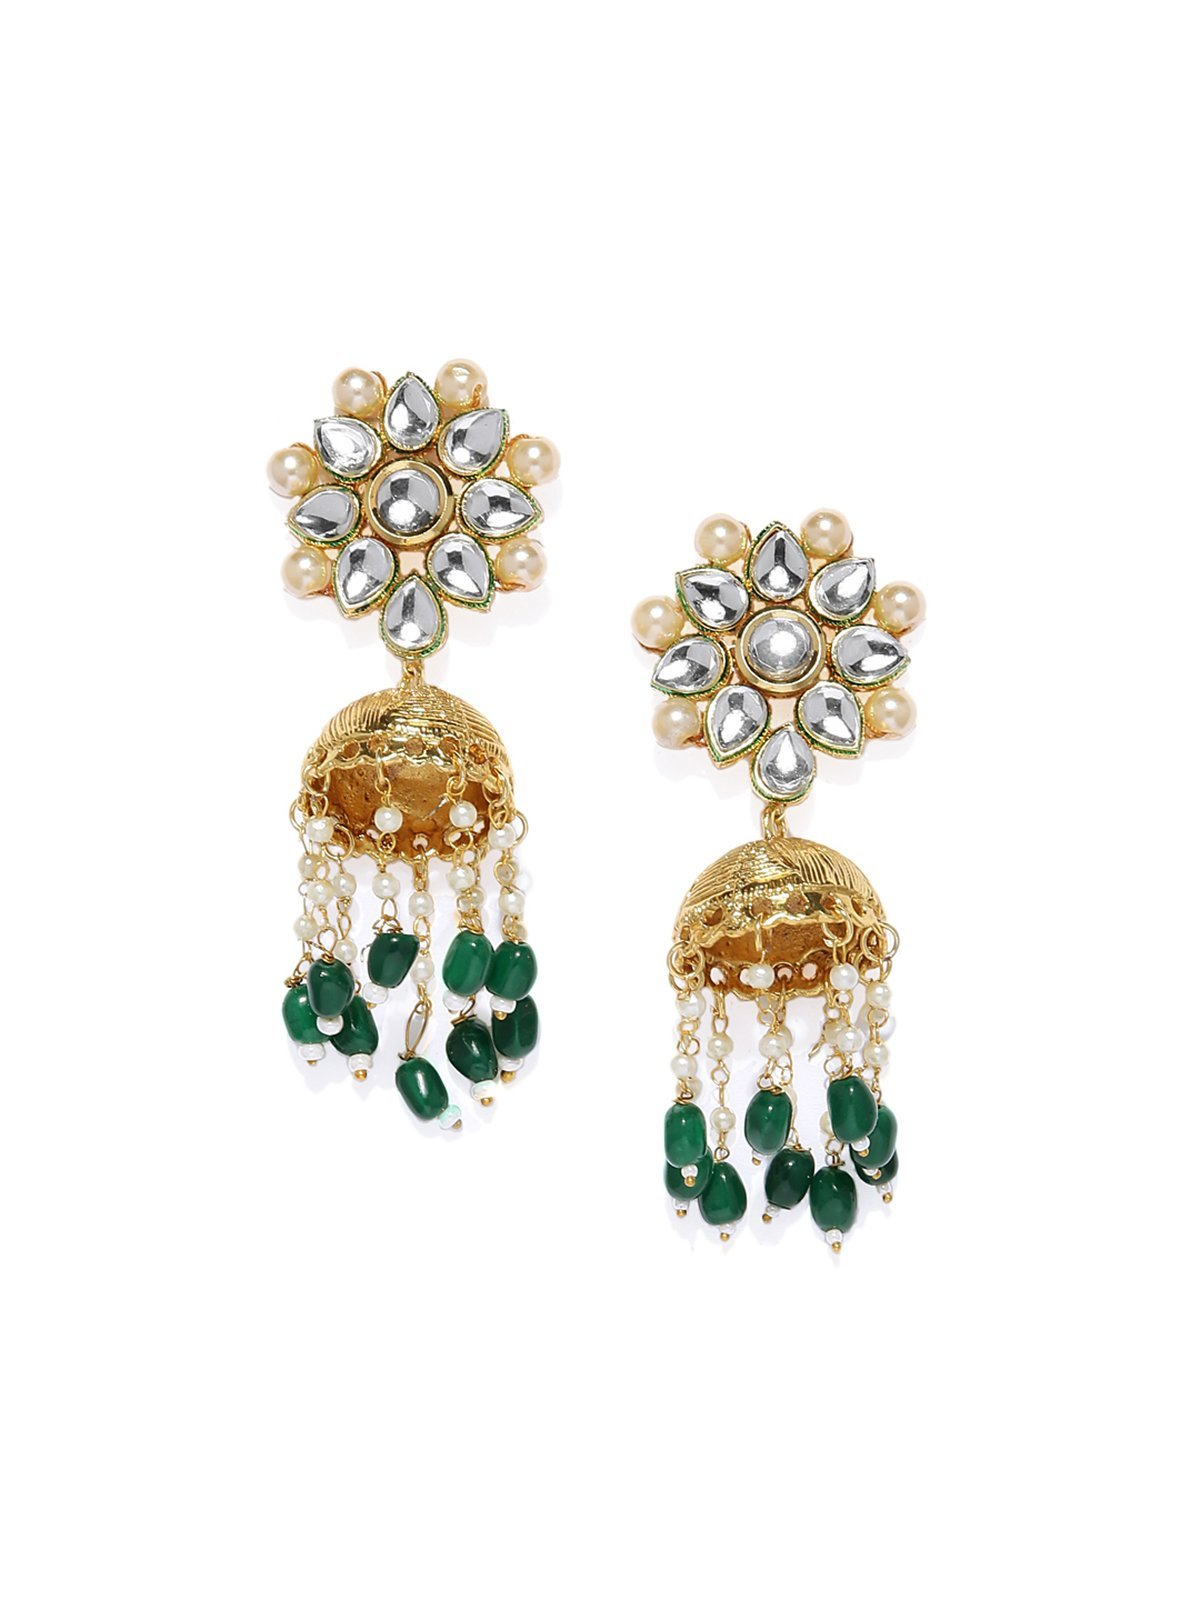 Gold Tone Traditional Kundan With Dangling Jhumka And Drops Earring